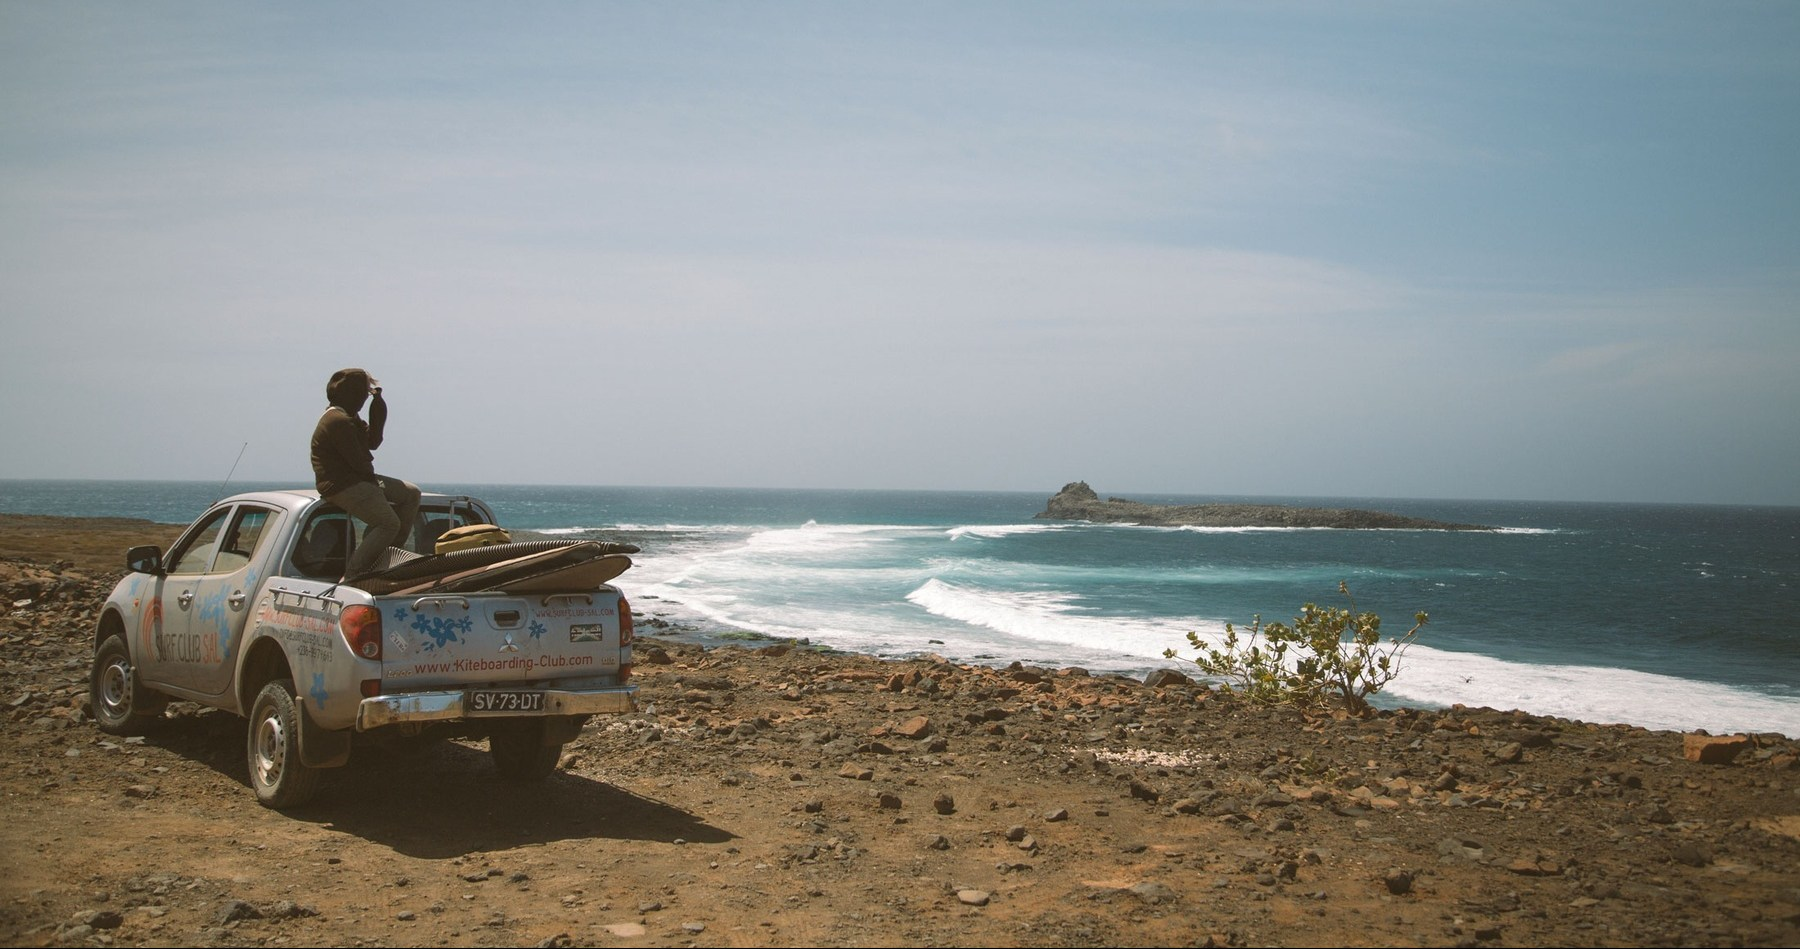 CAPE_VERT_LOOK_OUT_02